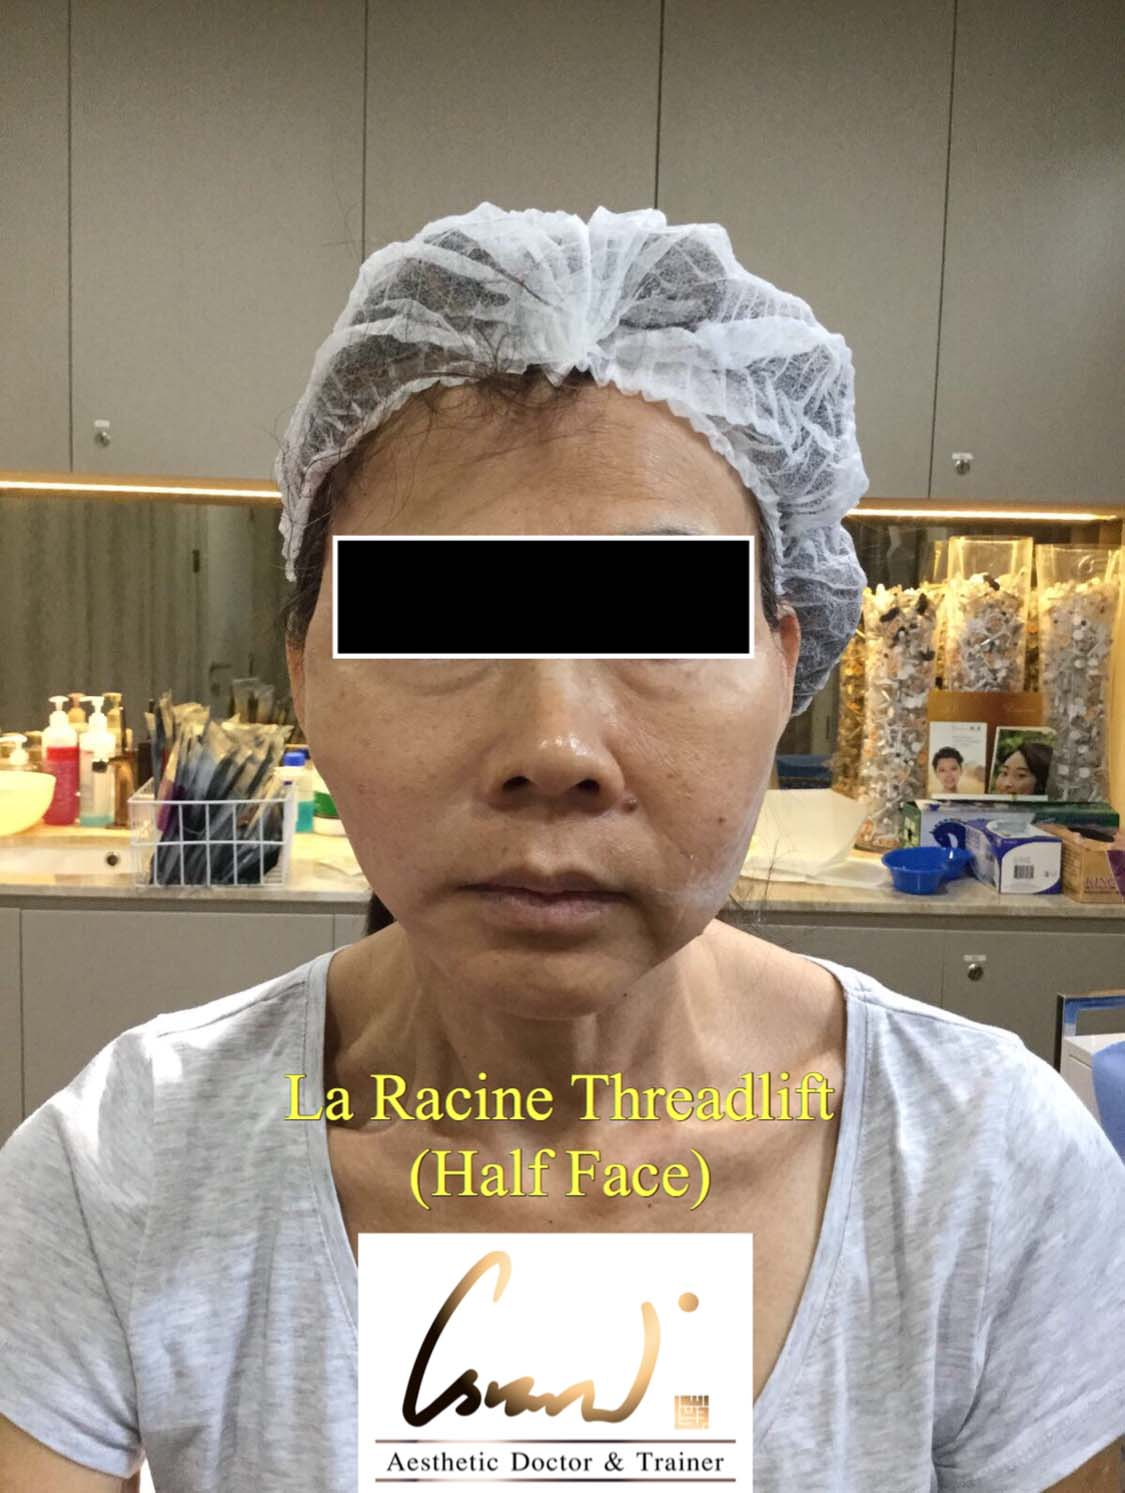 la racine threadlift